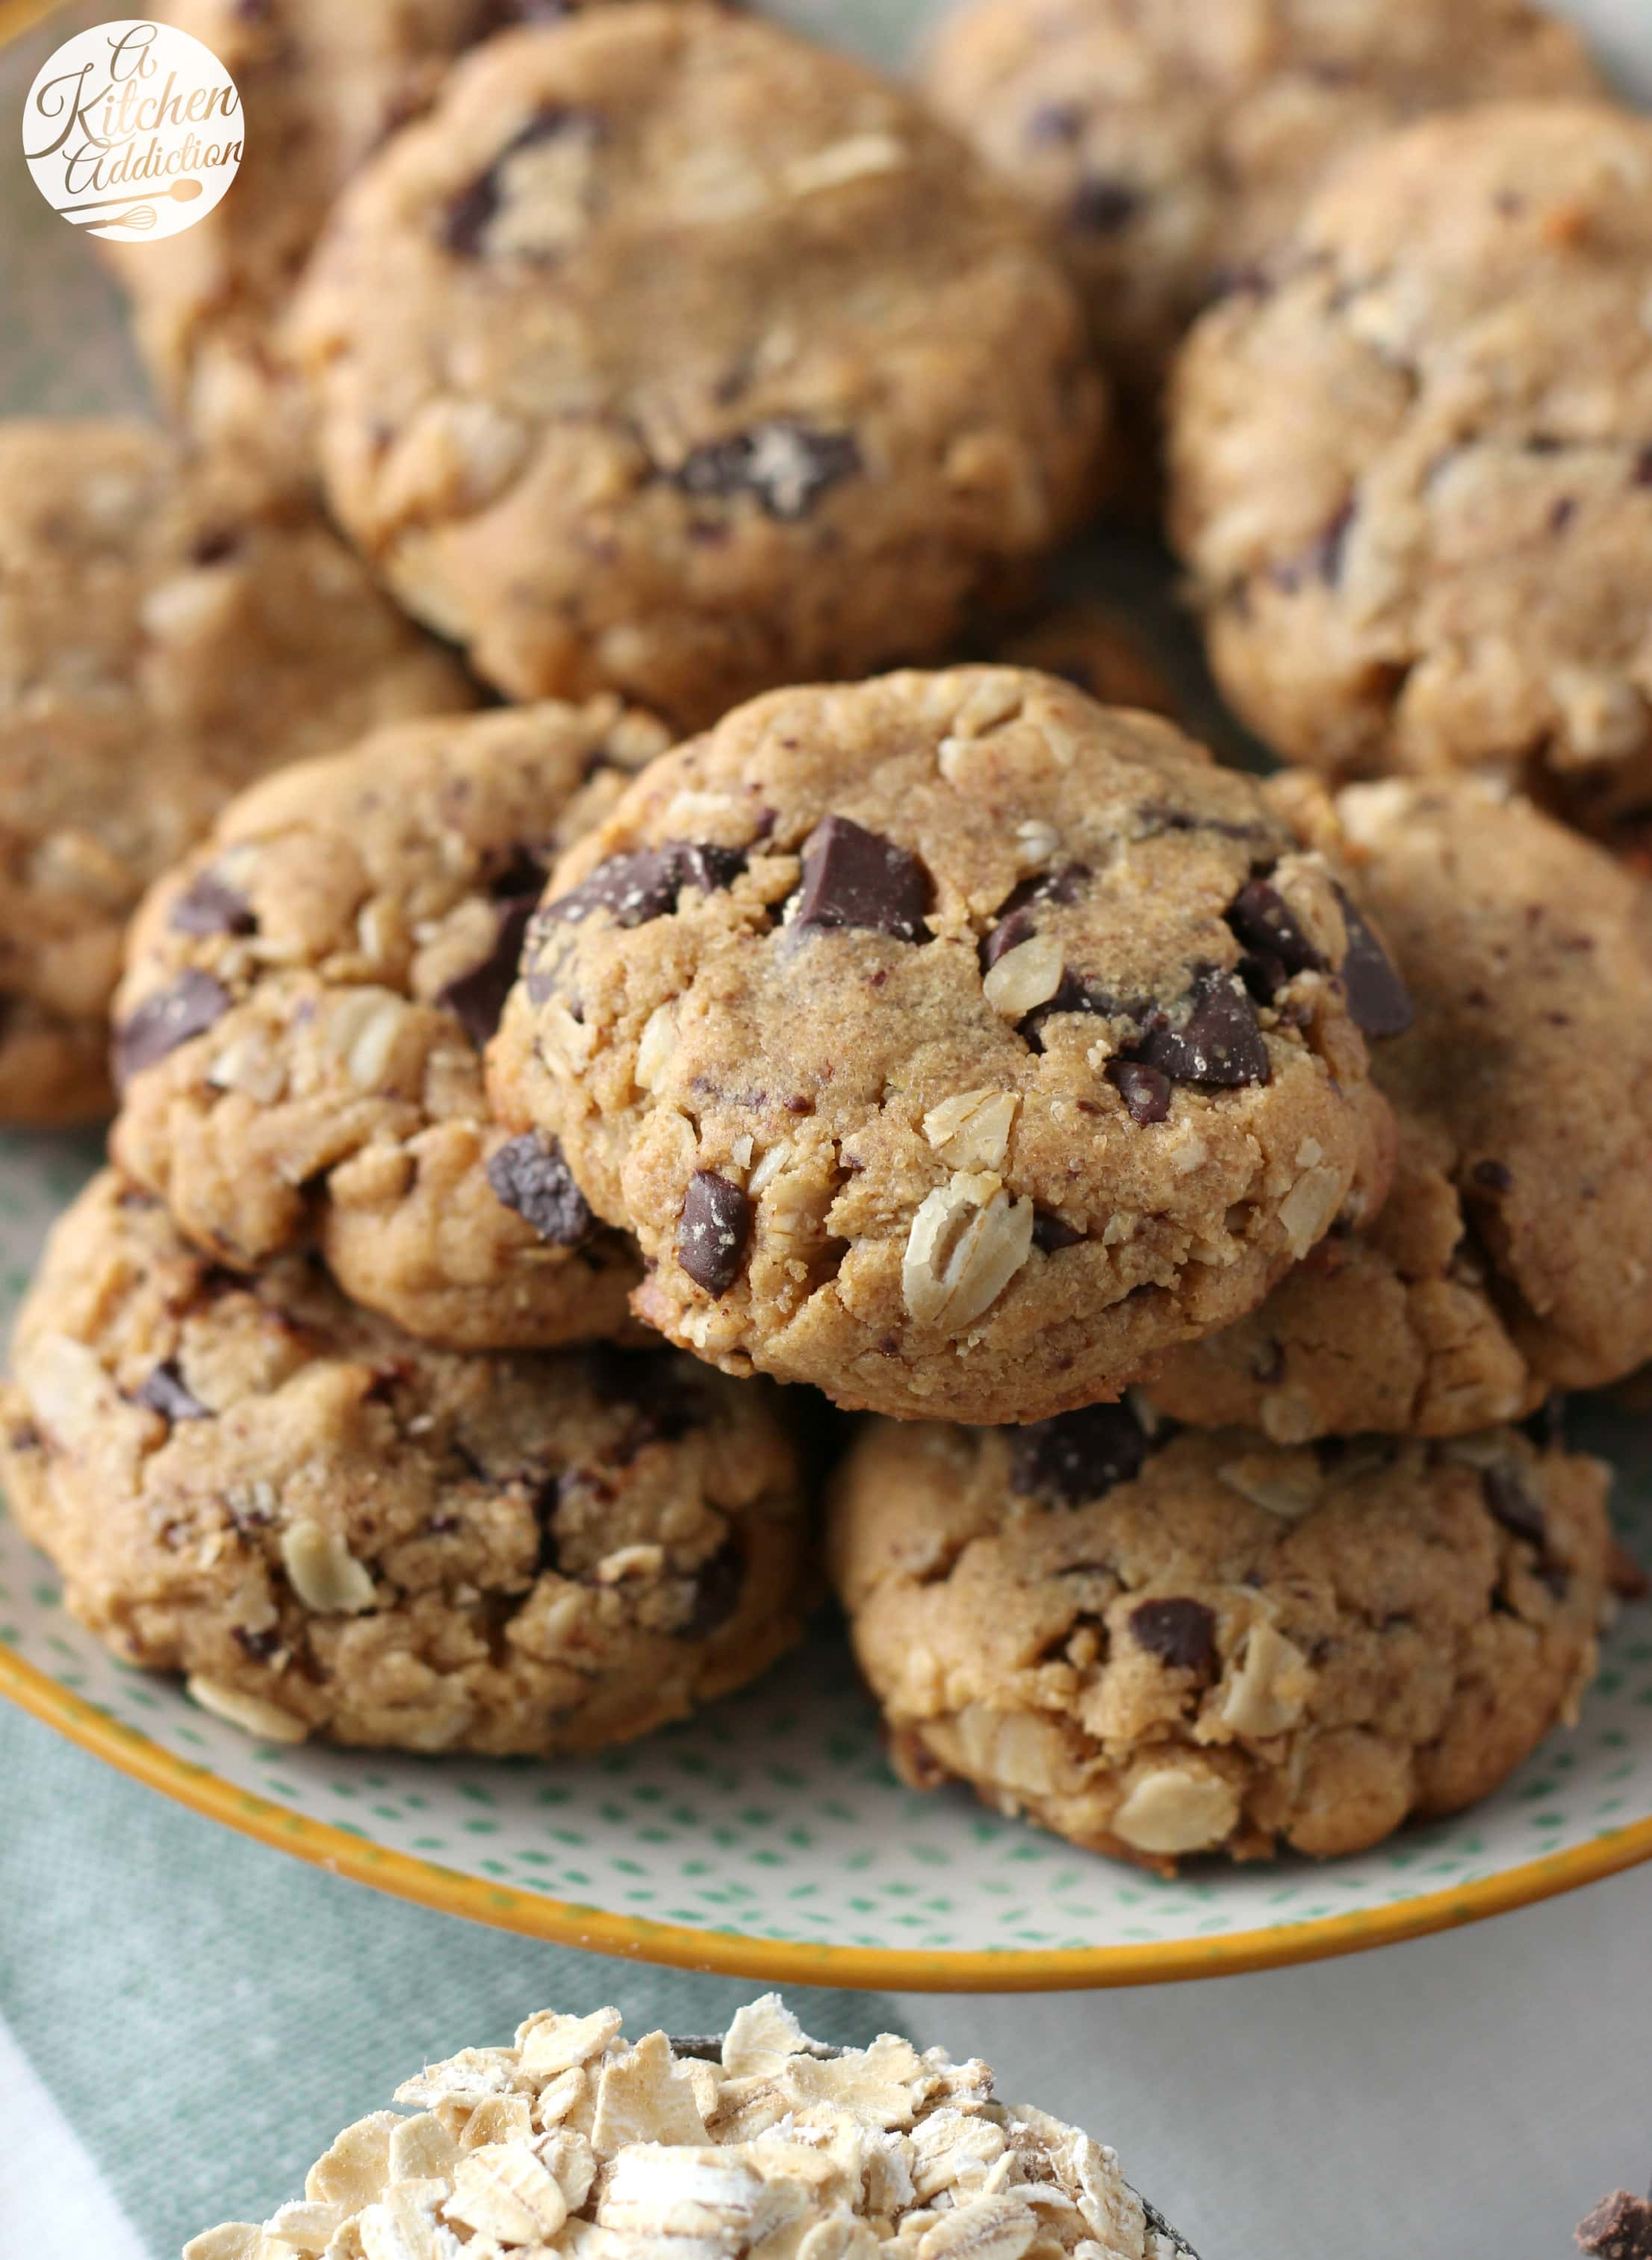 Peanut butter and oatmeal cookies recipes